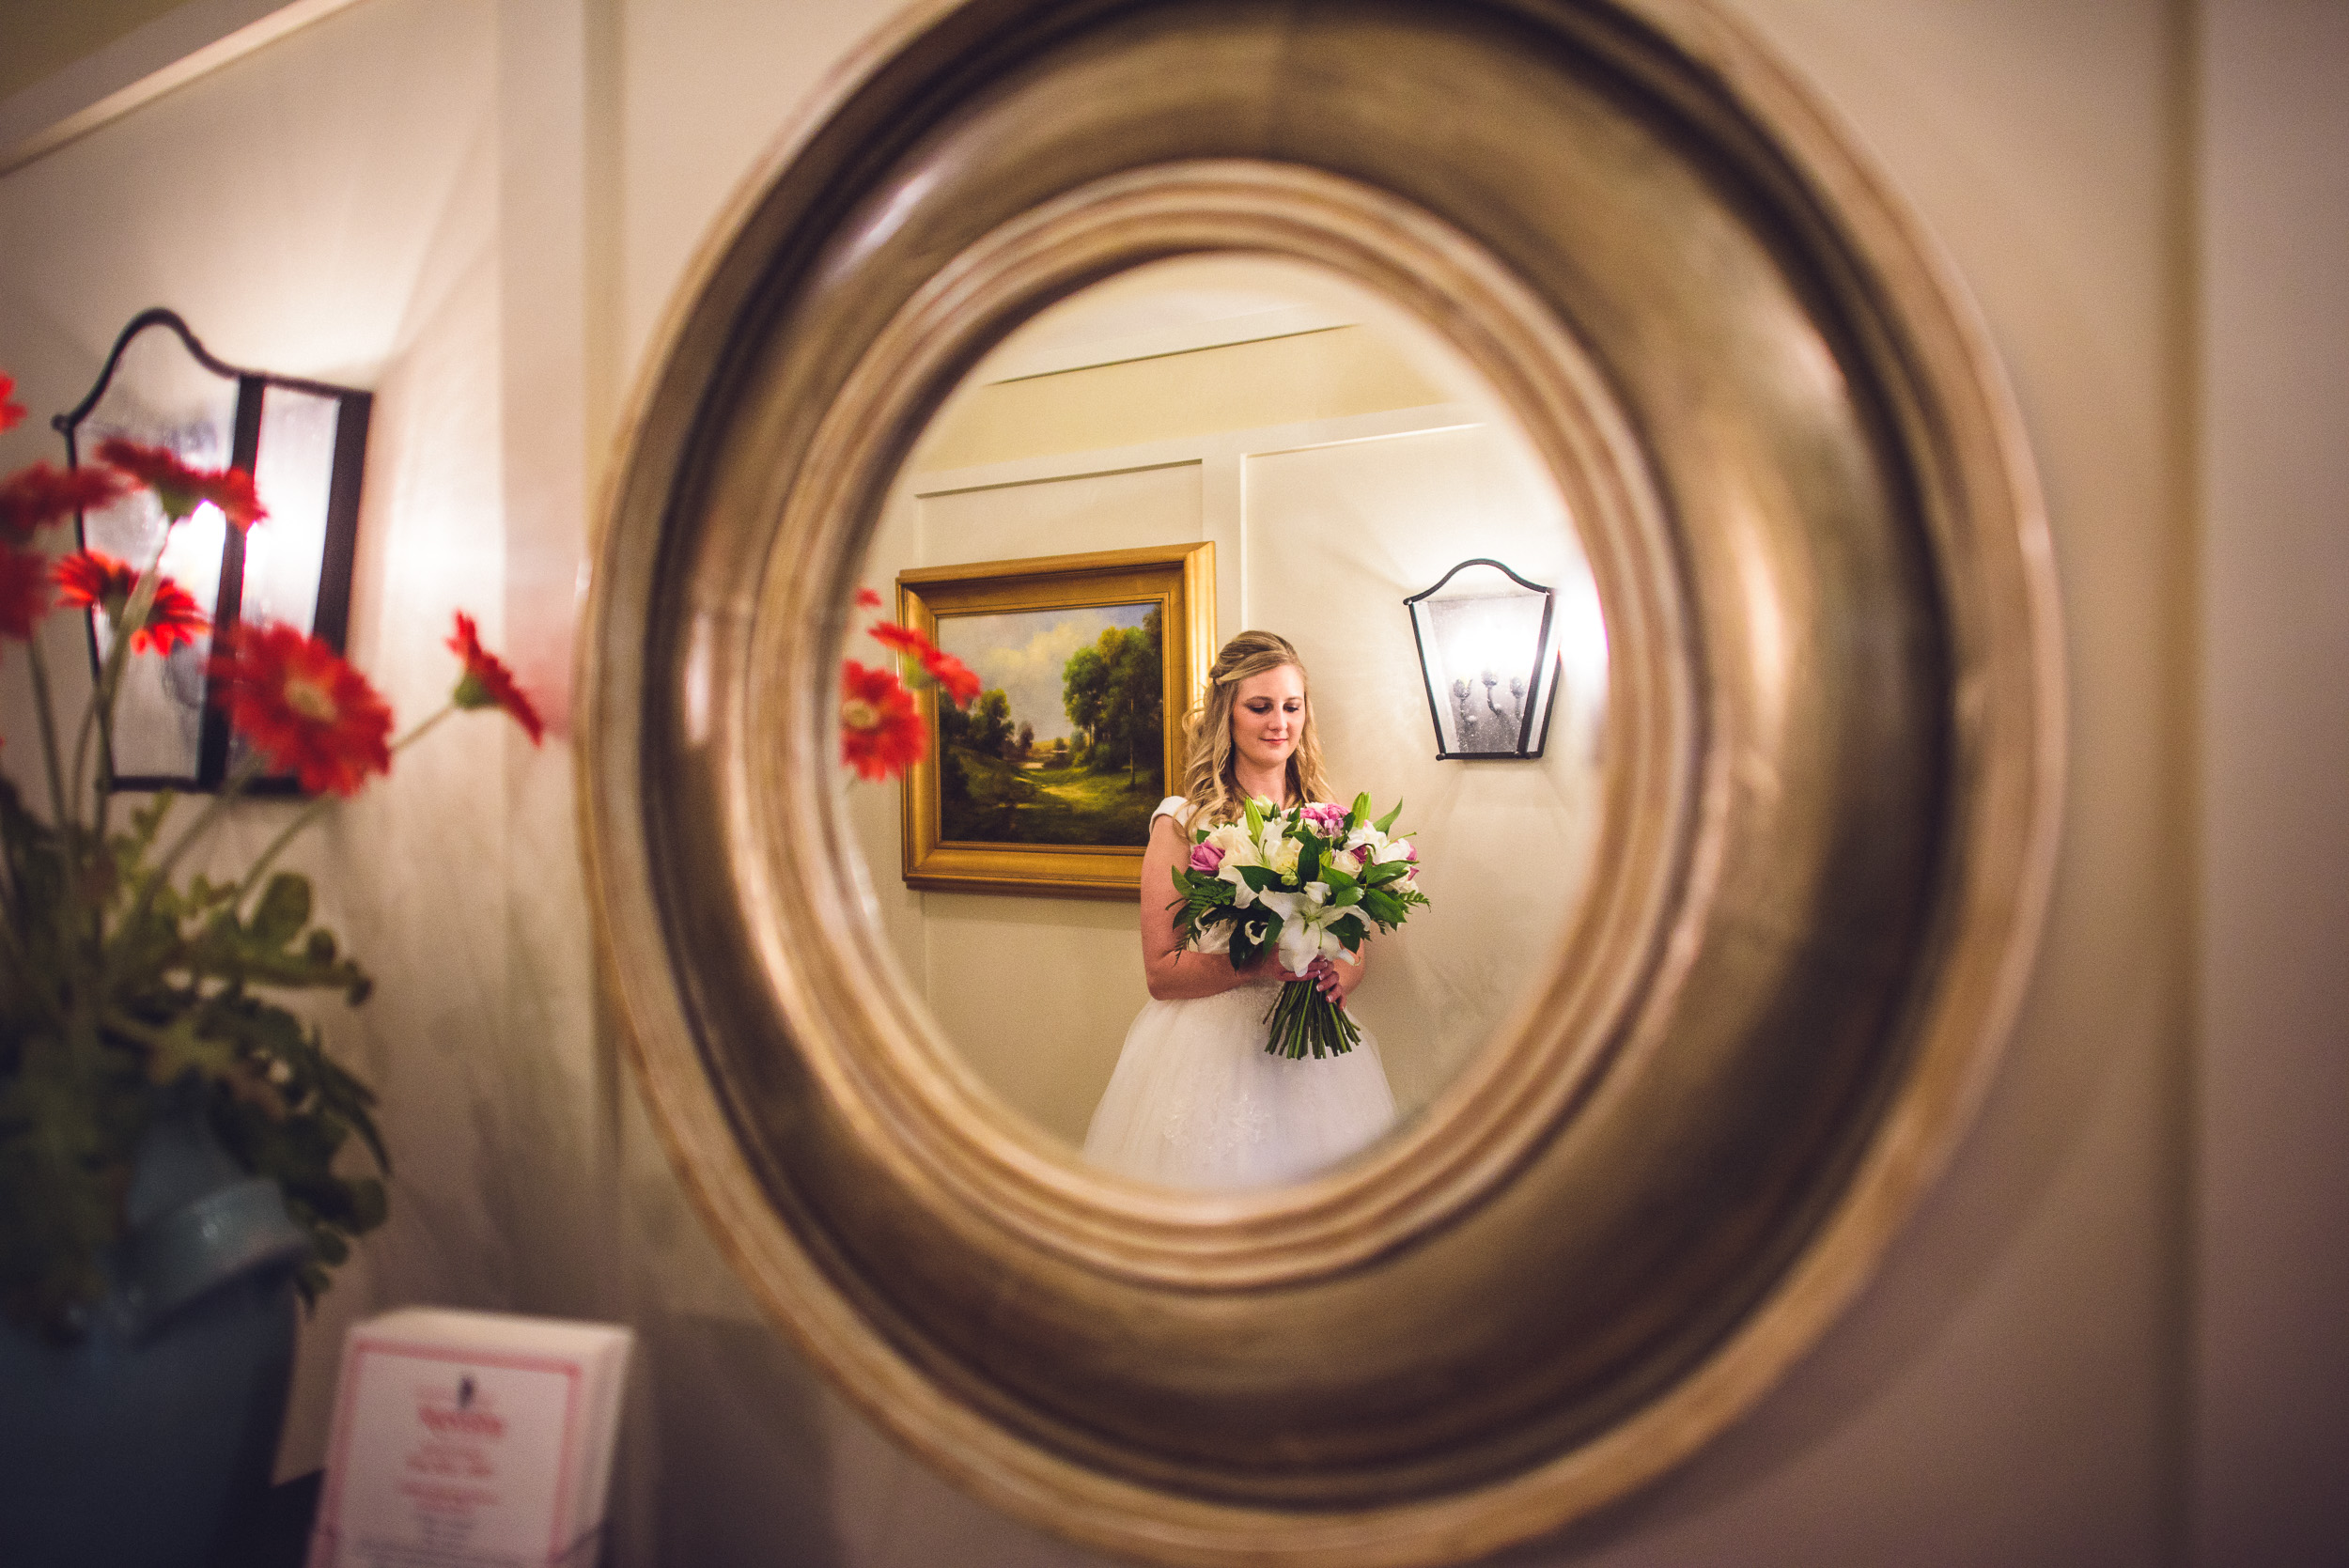 02-bride-with-bouquet-mirror-reflection